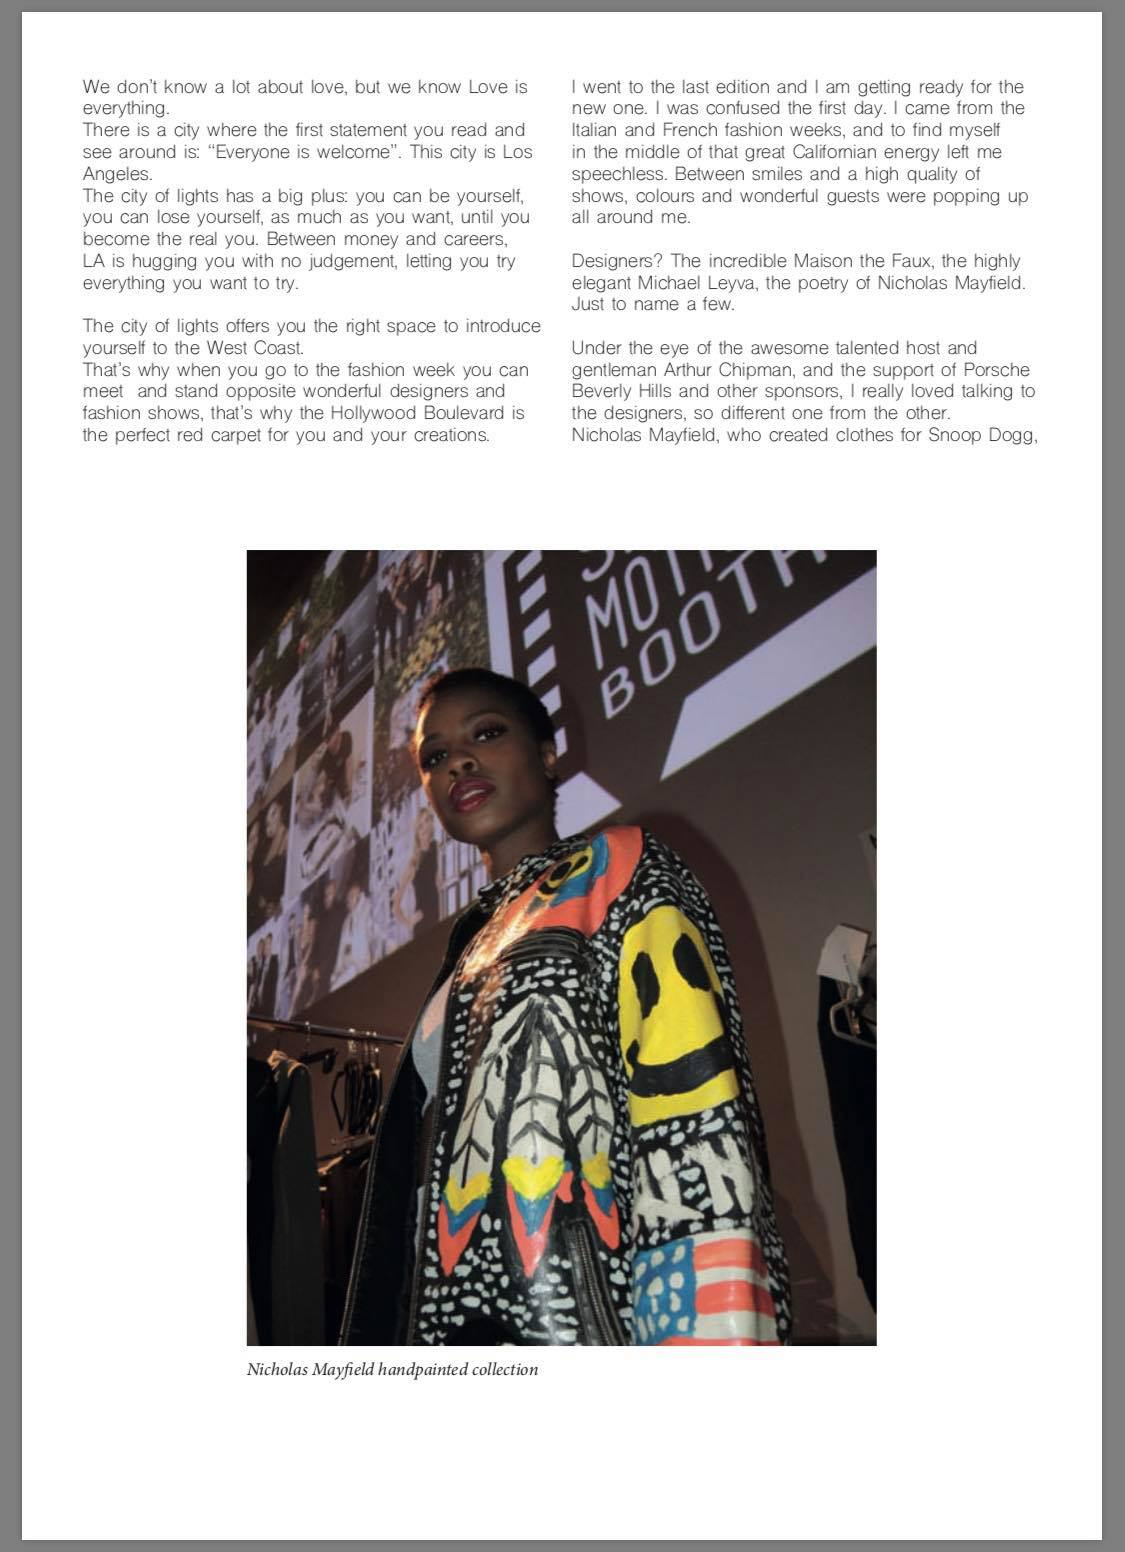 Article Of Photojournalism For The Los Angeles Fashion Week Sir K Magazine The Style Researcher Raimondo Rossi Ray Morrison The Style Researcher Magazine